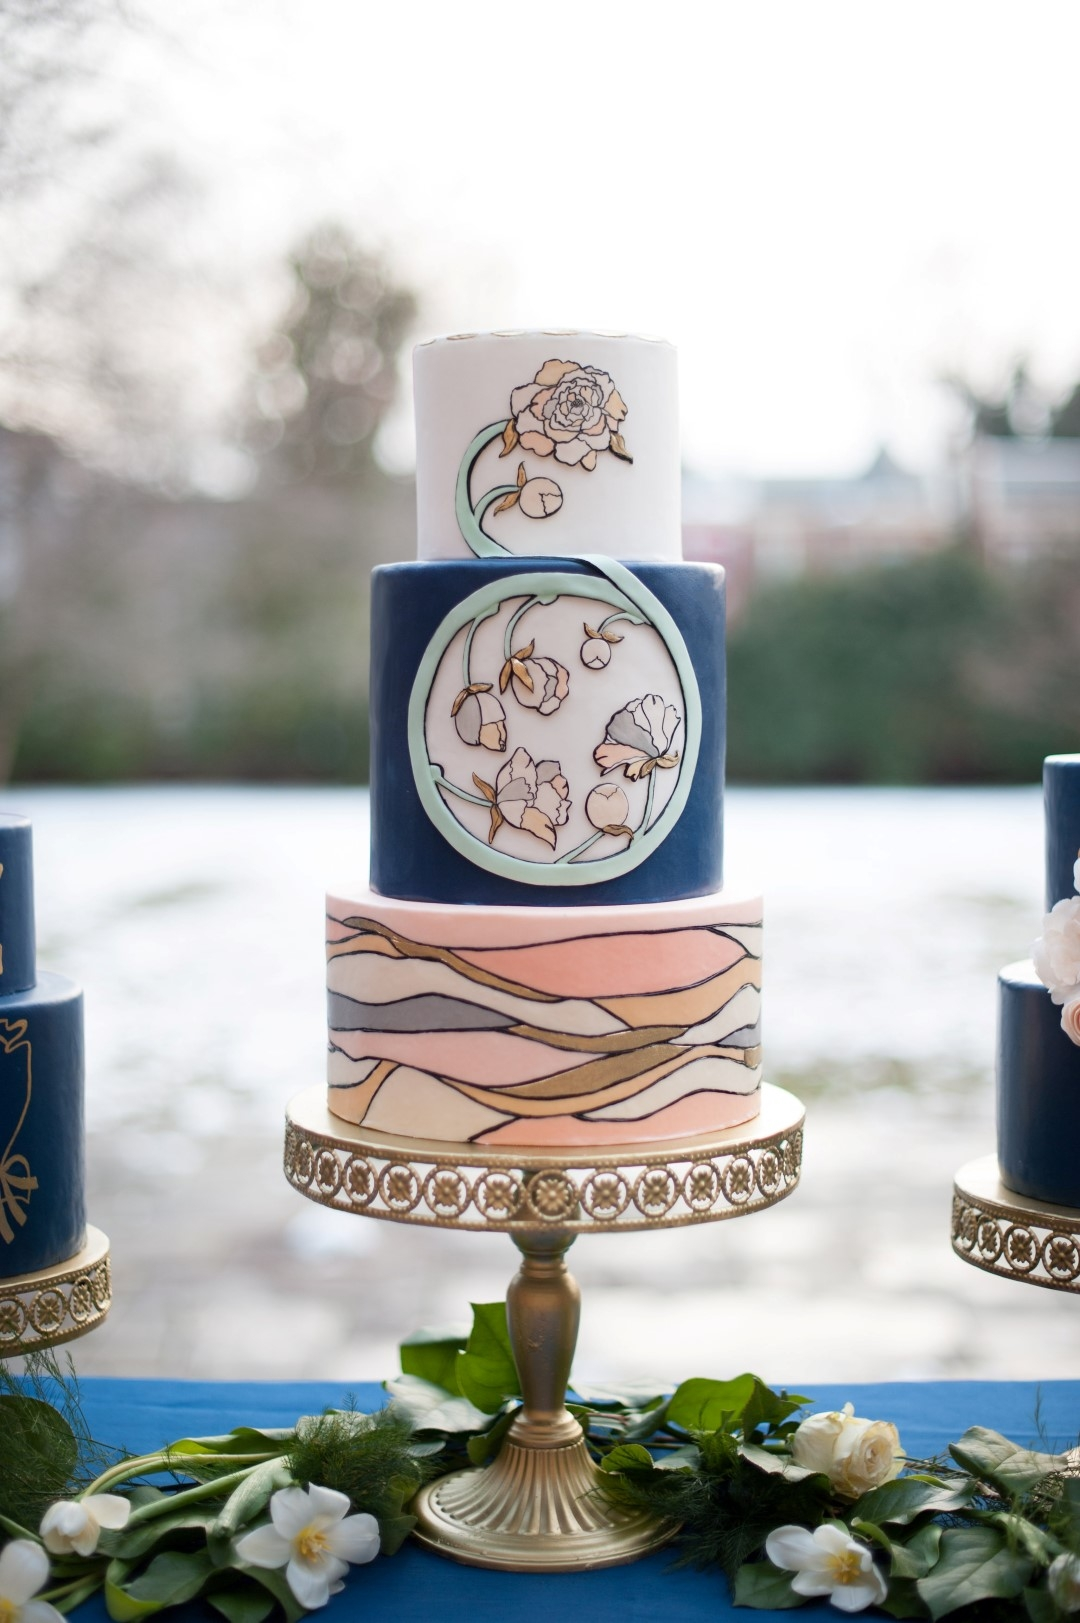 art nouveau wedding cake nouveau wedding cakes cakecentral 10858